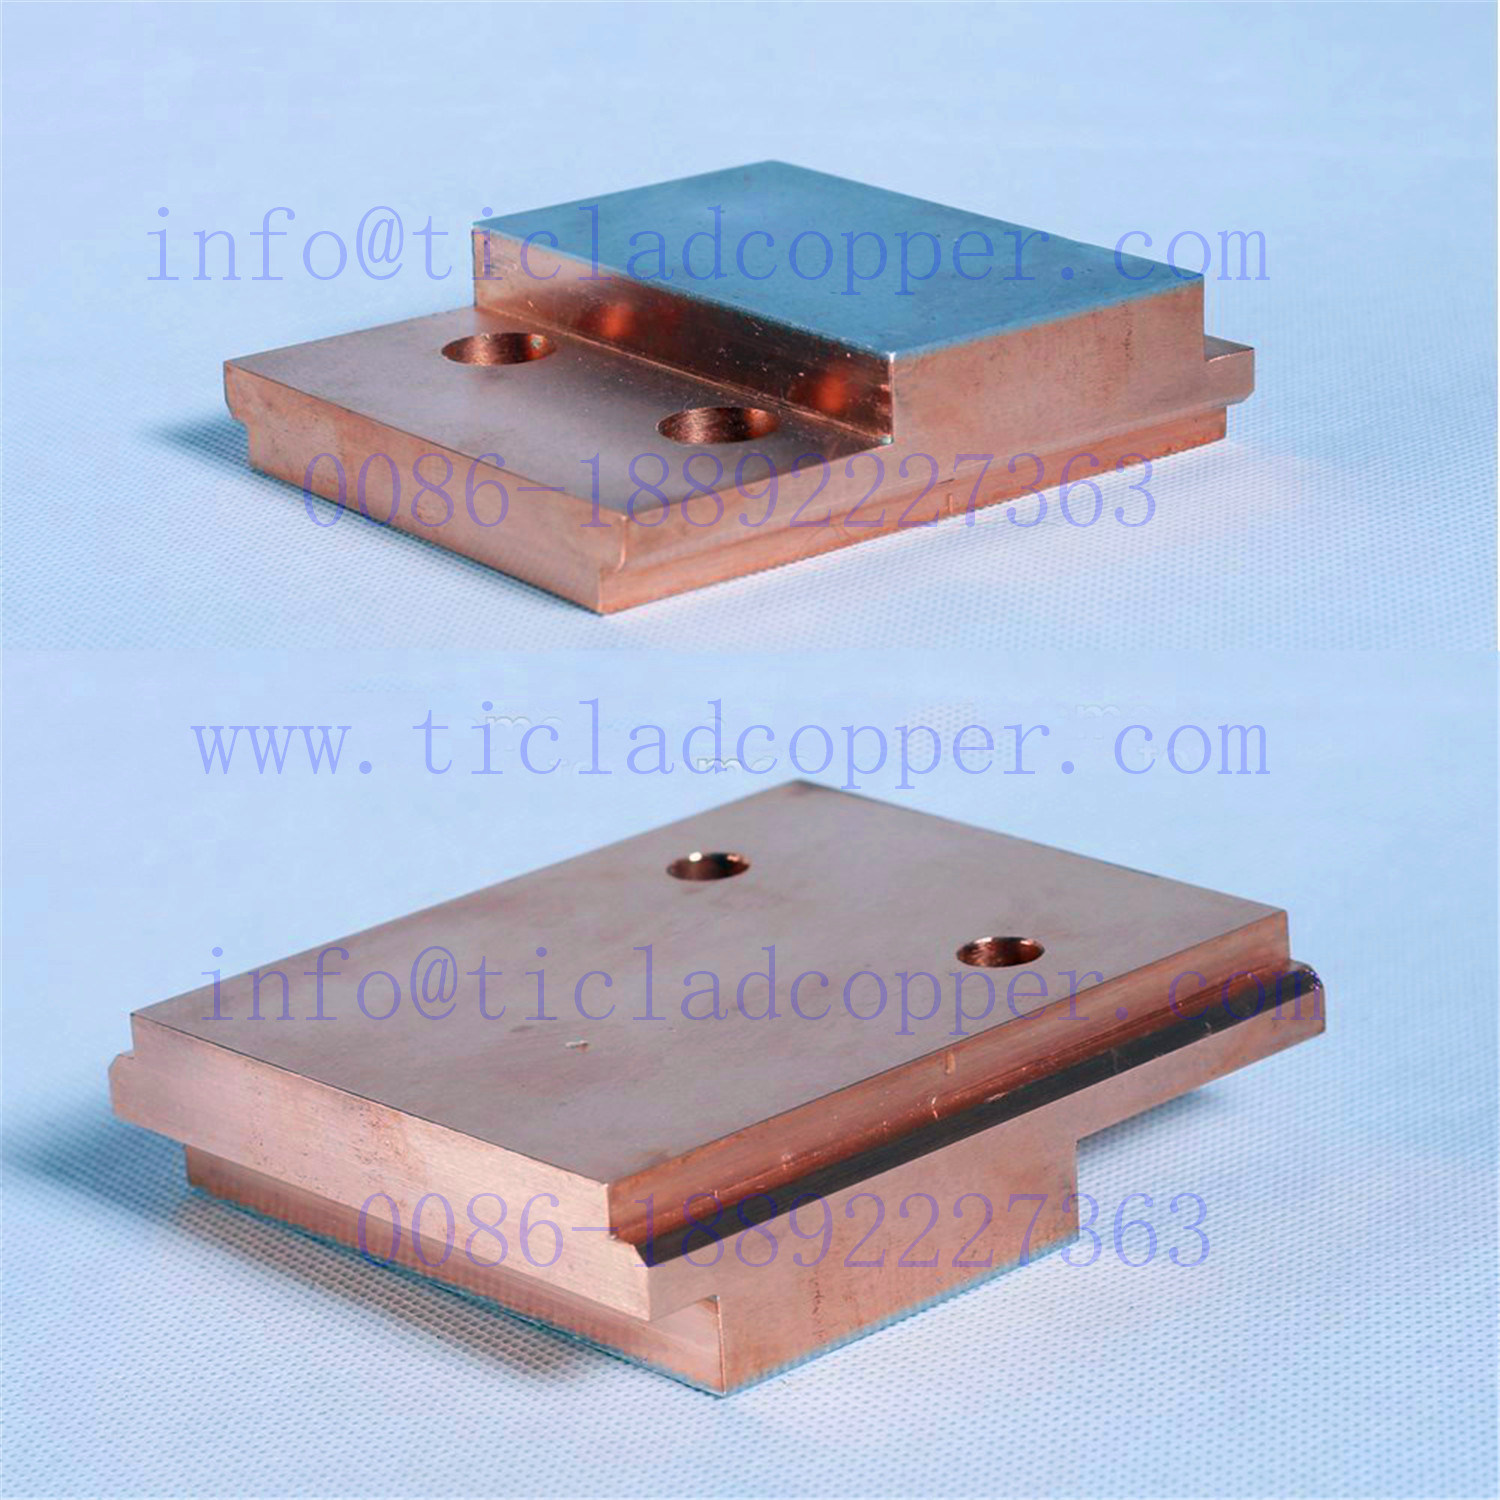 Soft Flexible Copper Foiled Expansion Connector